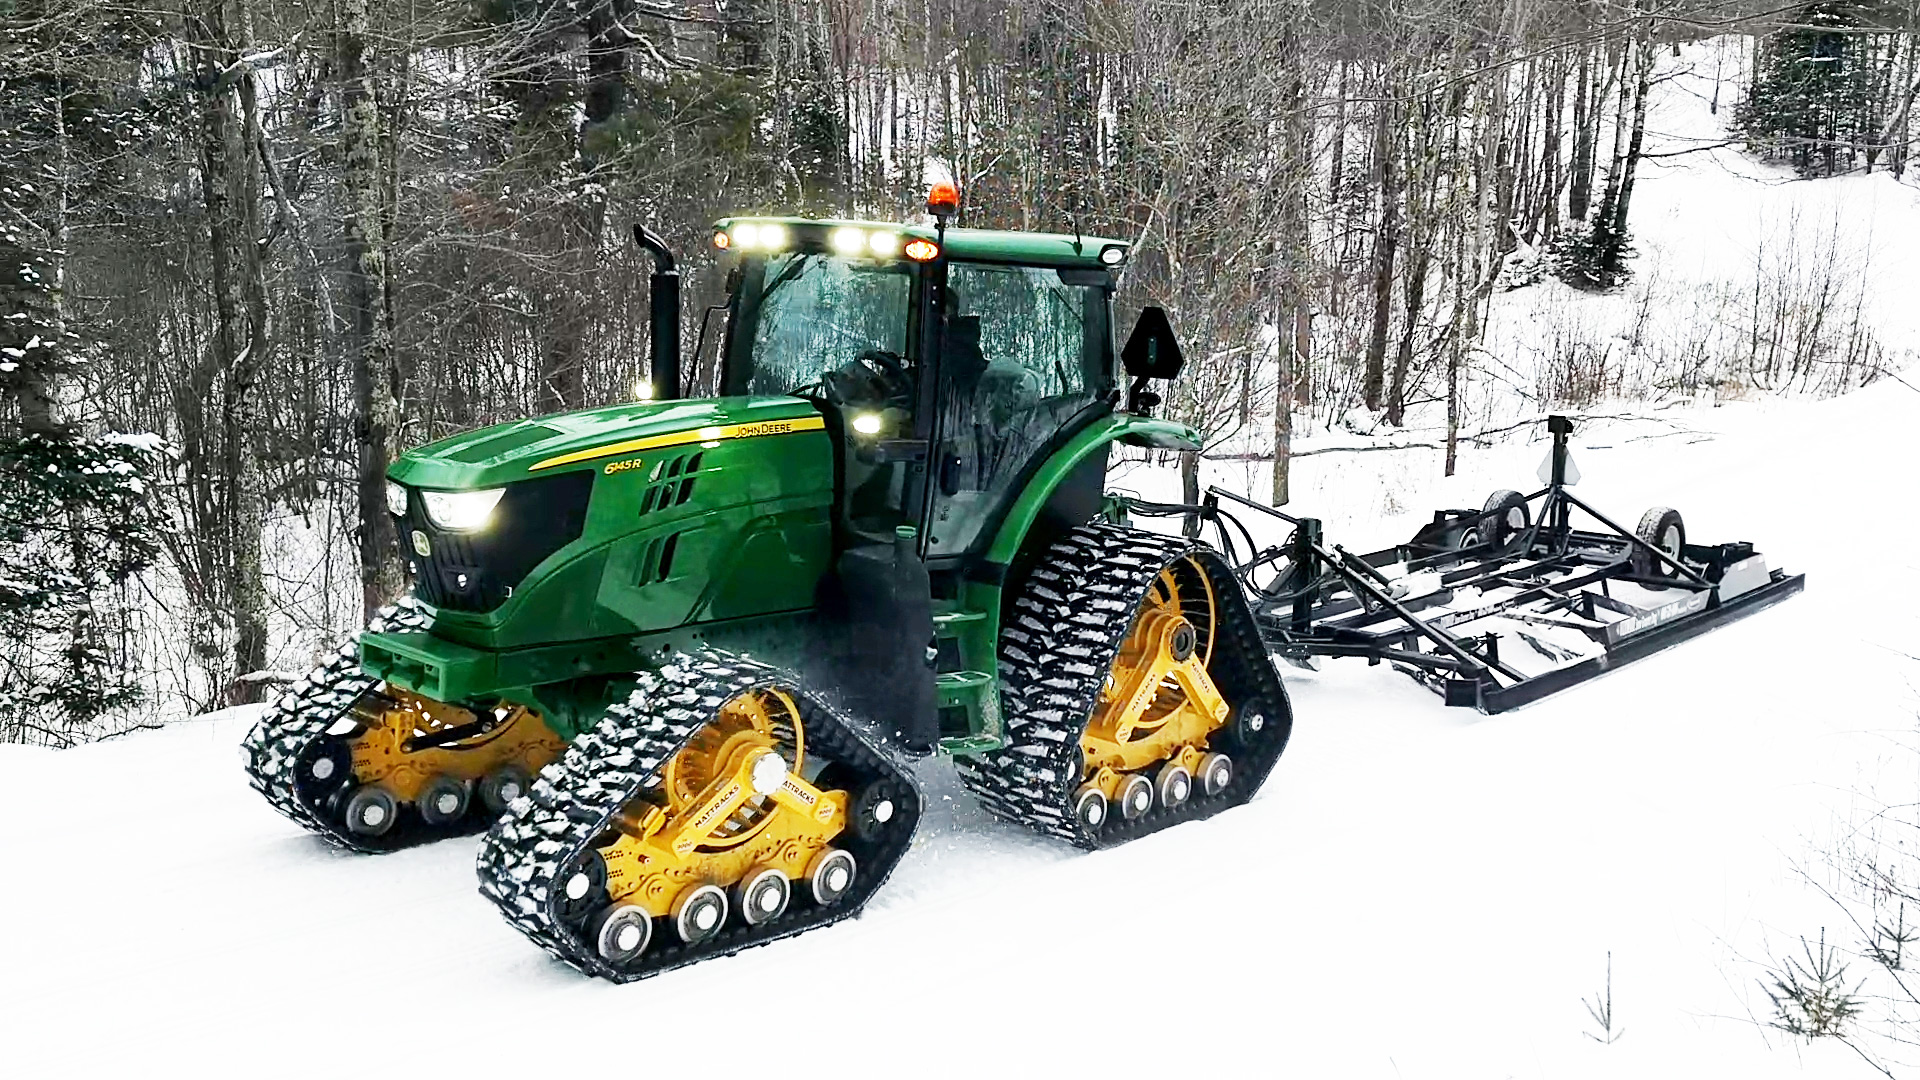 9000L-FG-2030 Series Tracks on a John Deere 6145R